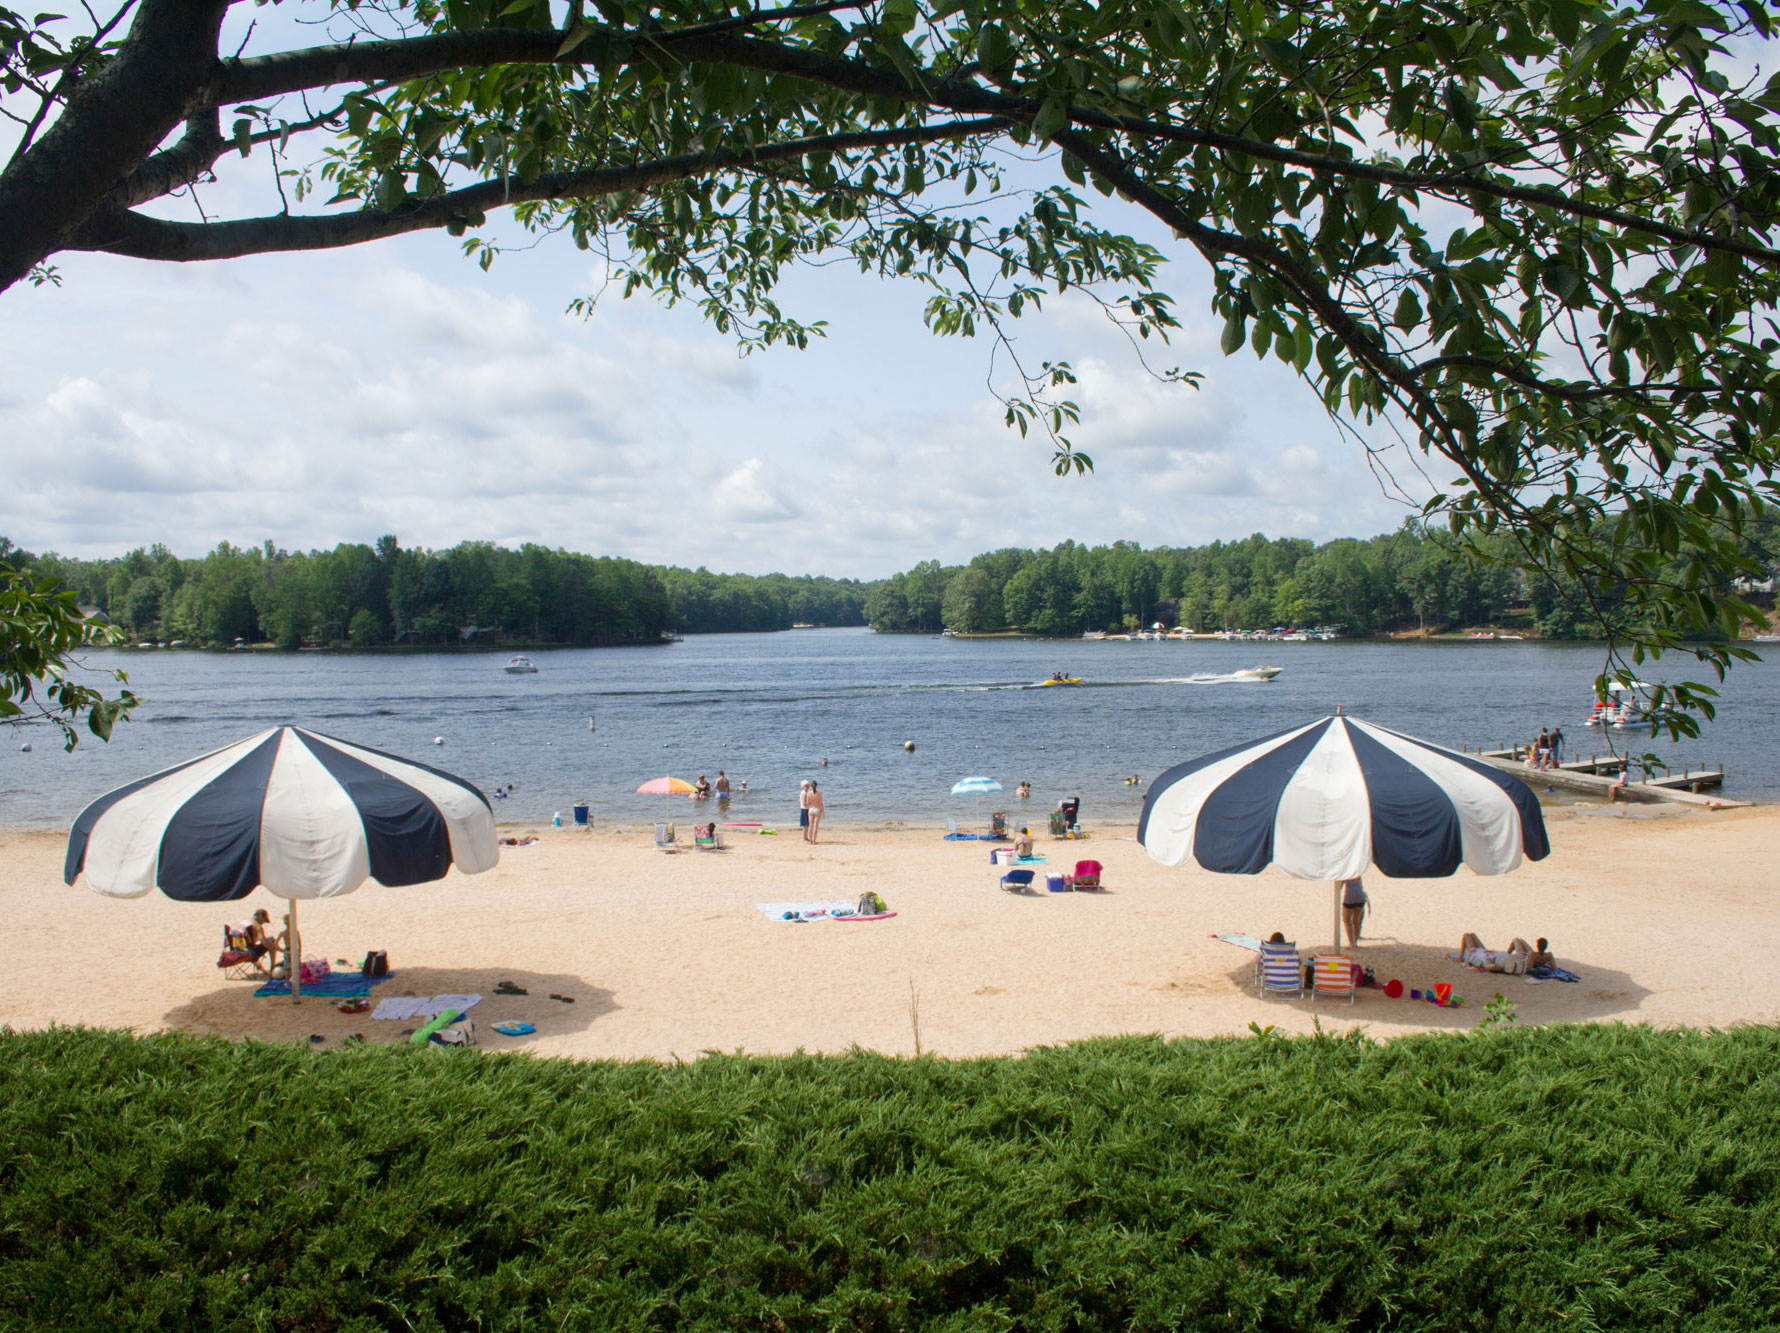 The Beach at Lake Monticello